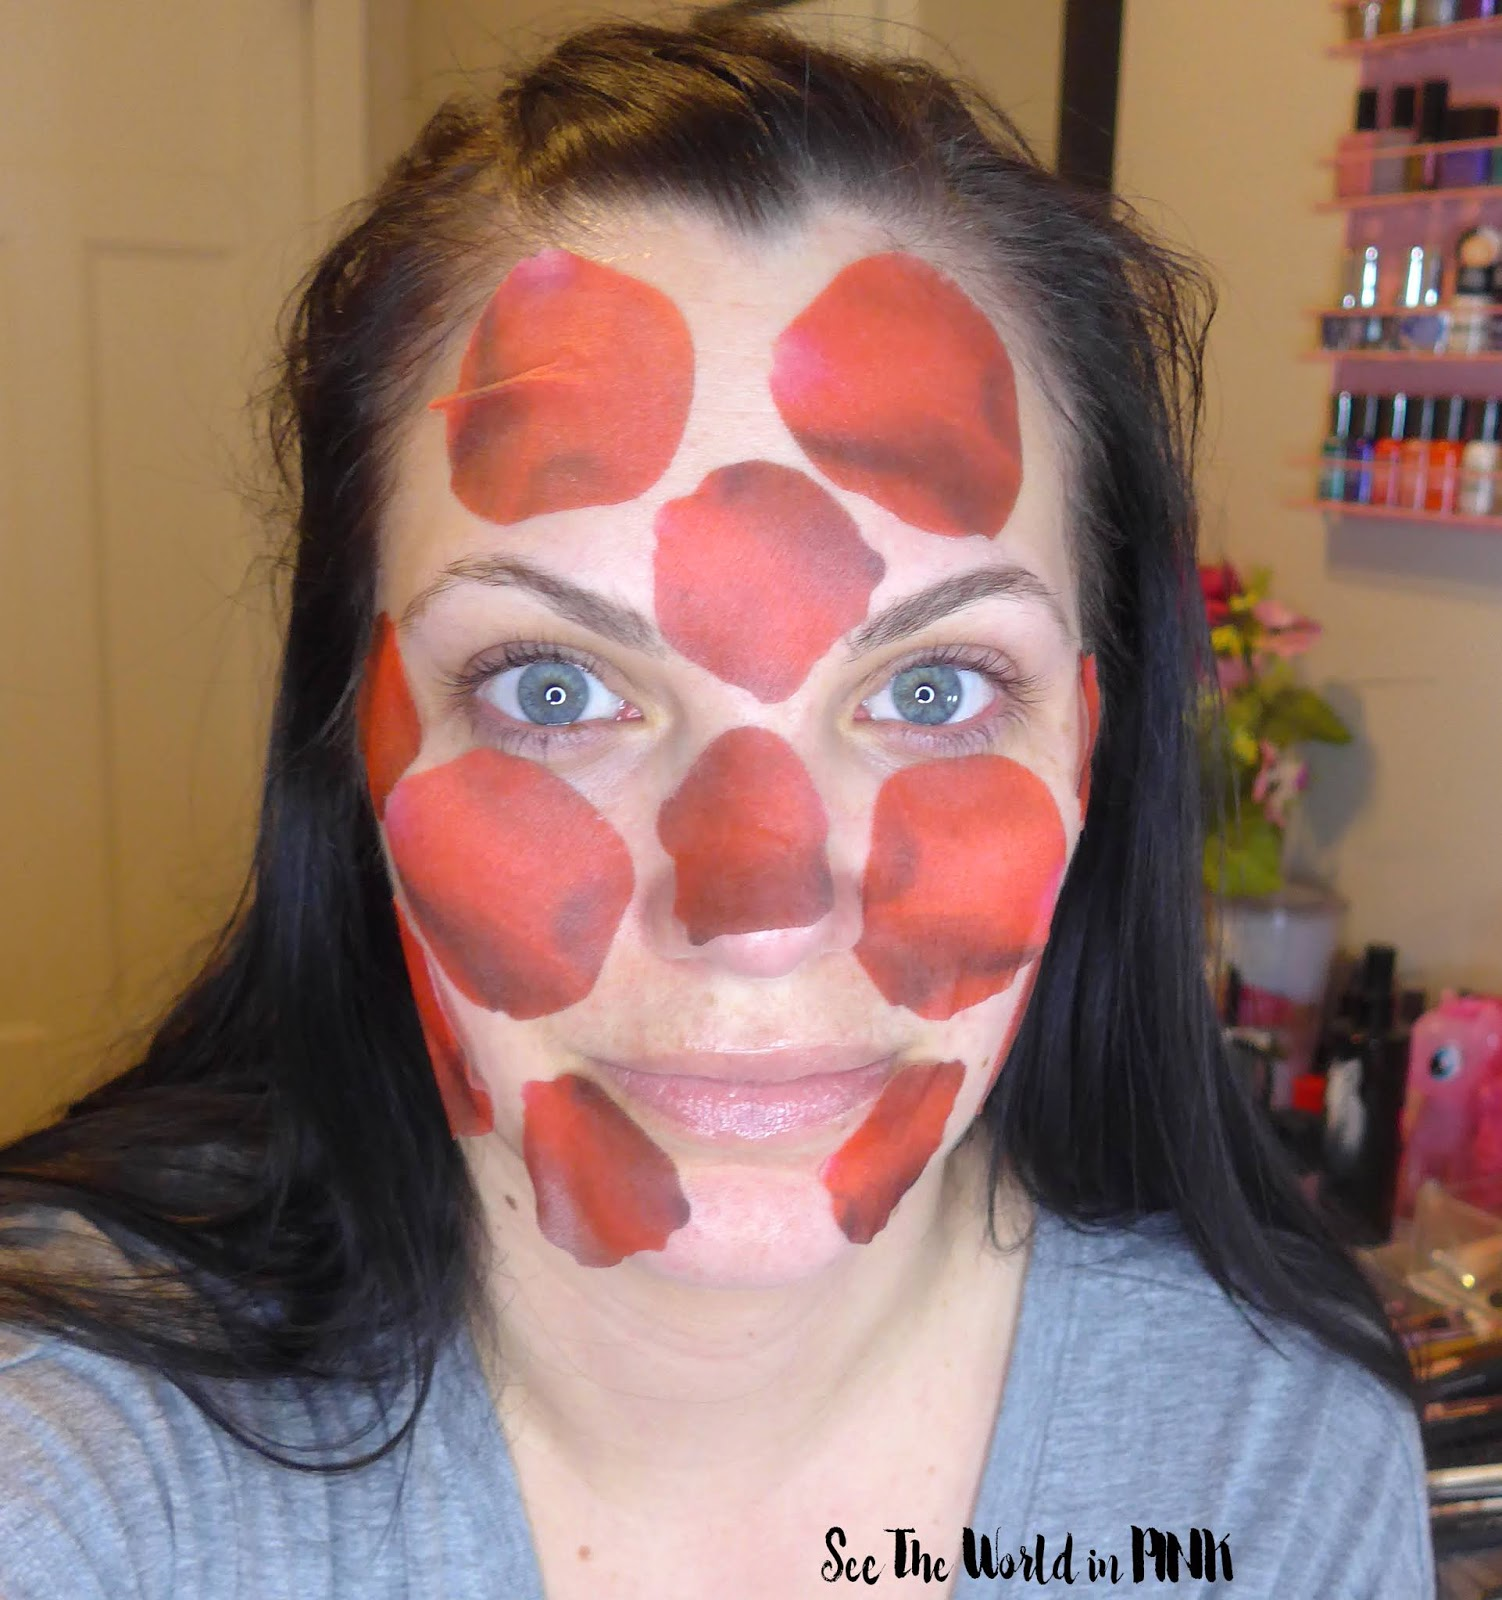 #CBBGetsSheetFaced Kocostar Rose Mask